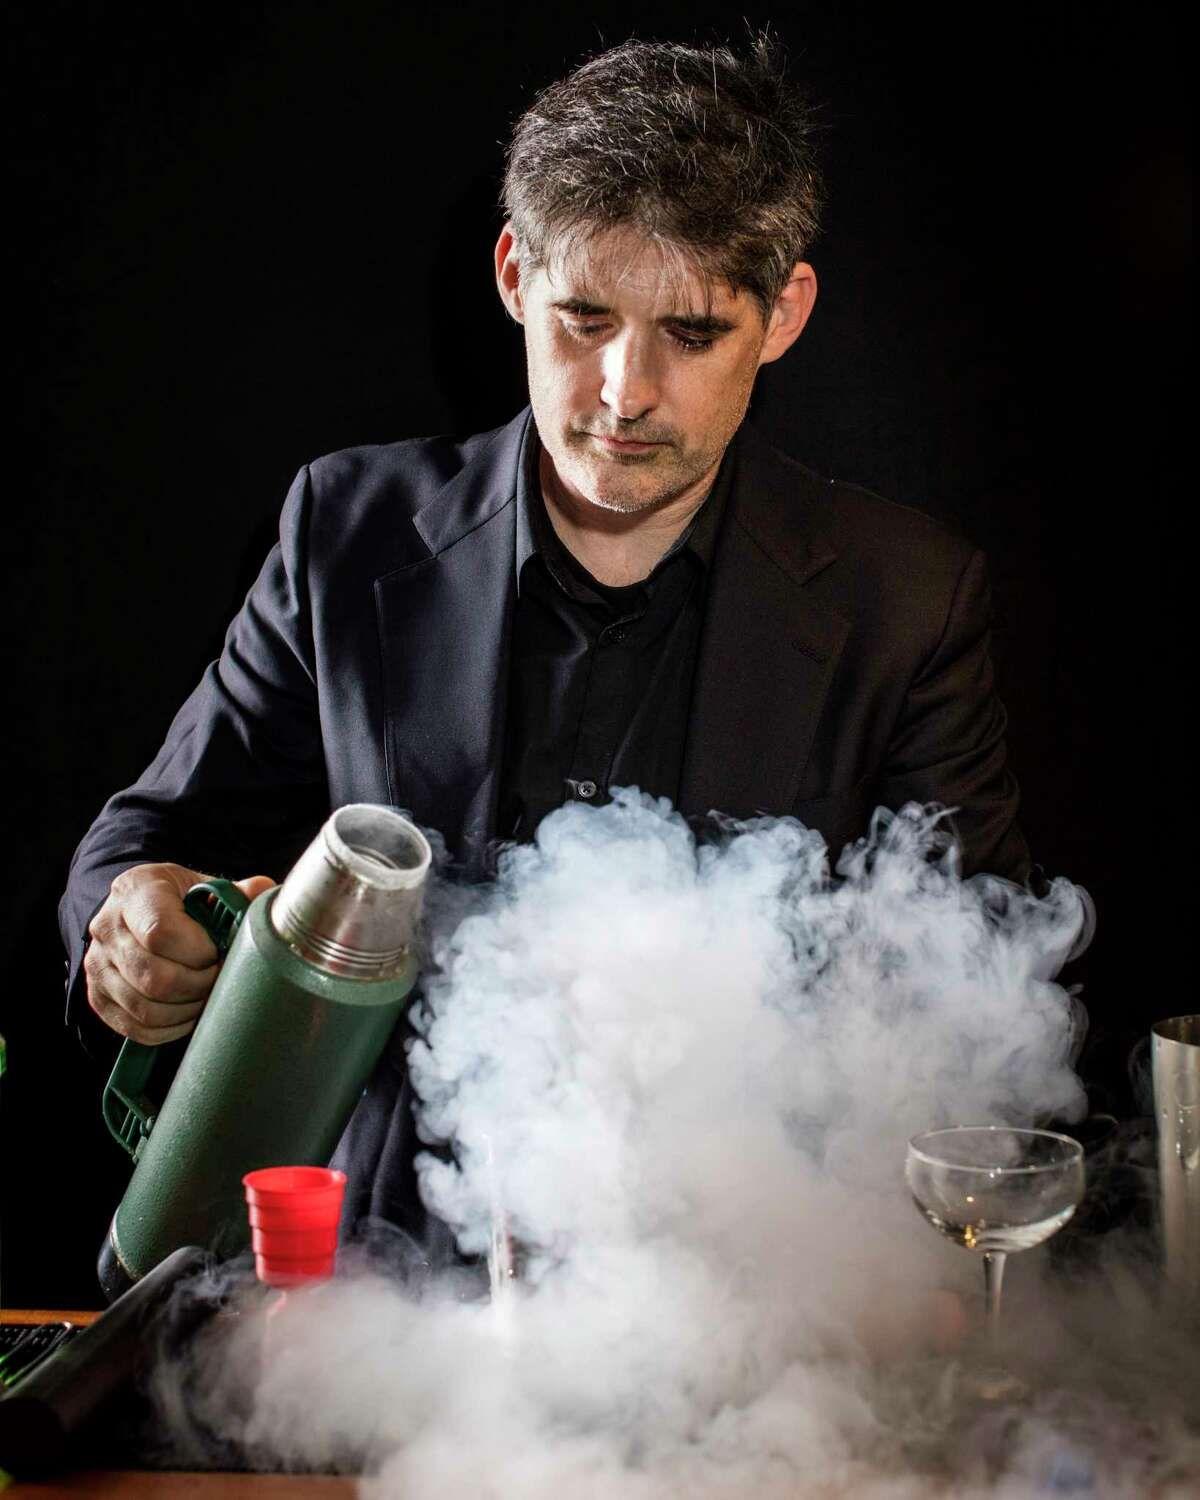 Dave Arnold from the bar Existing Conditions in New York will host the Bar Takeover with Dave Arnold At UB Preserv on April 17 as part of Southern Smoke Spring.